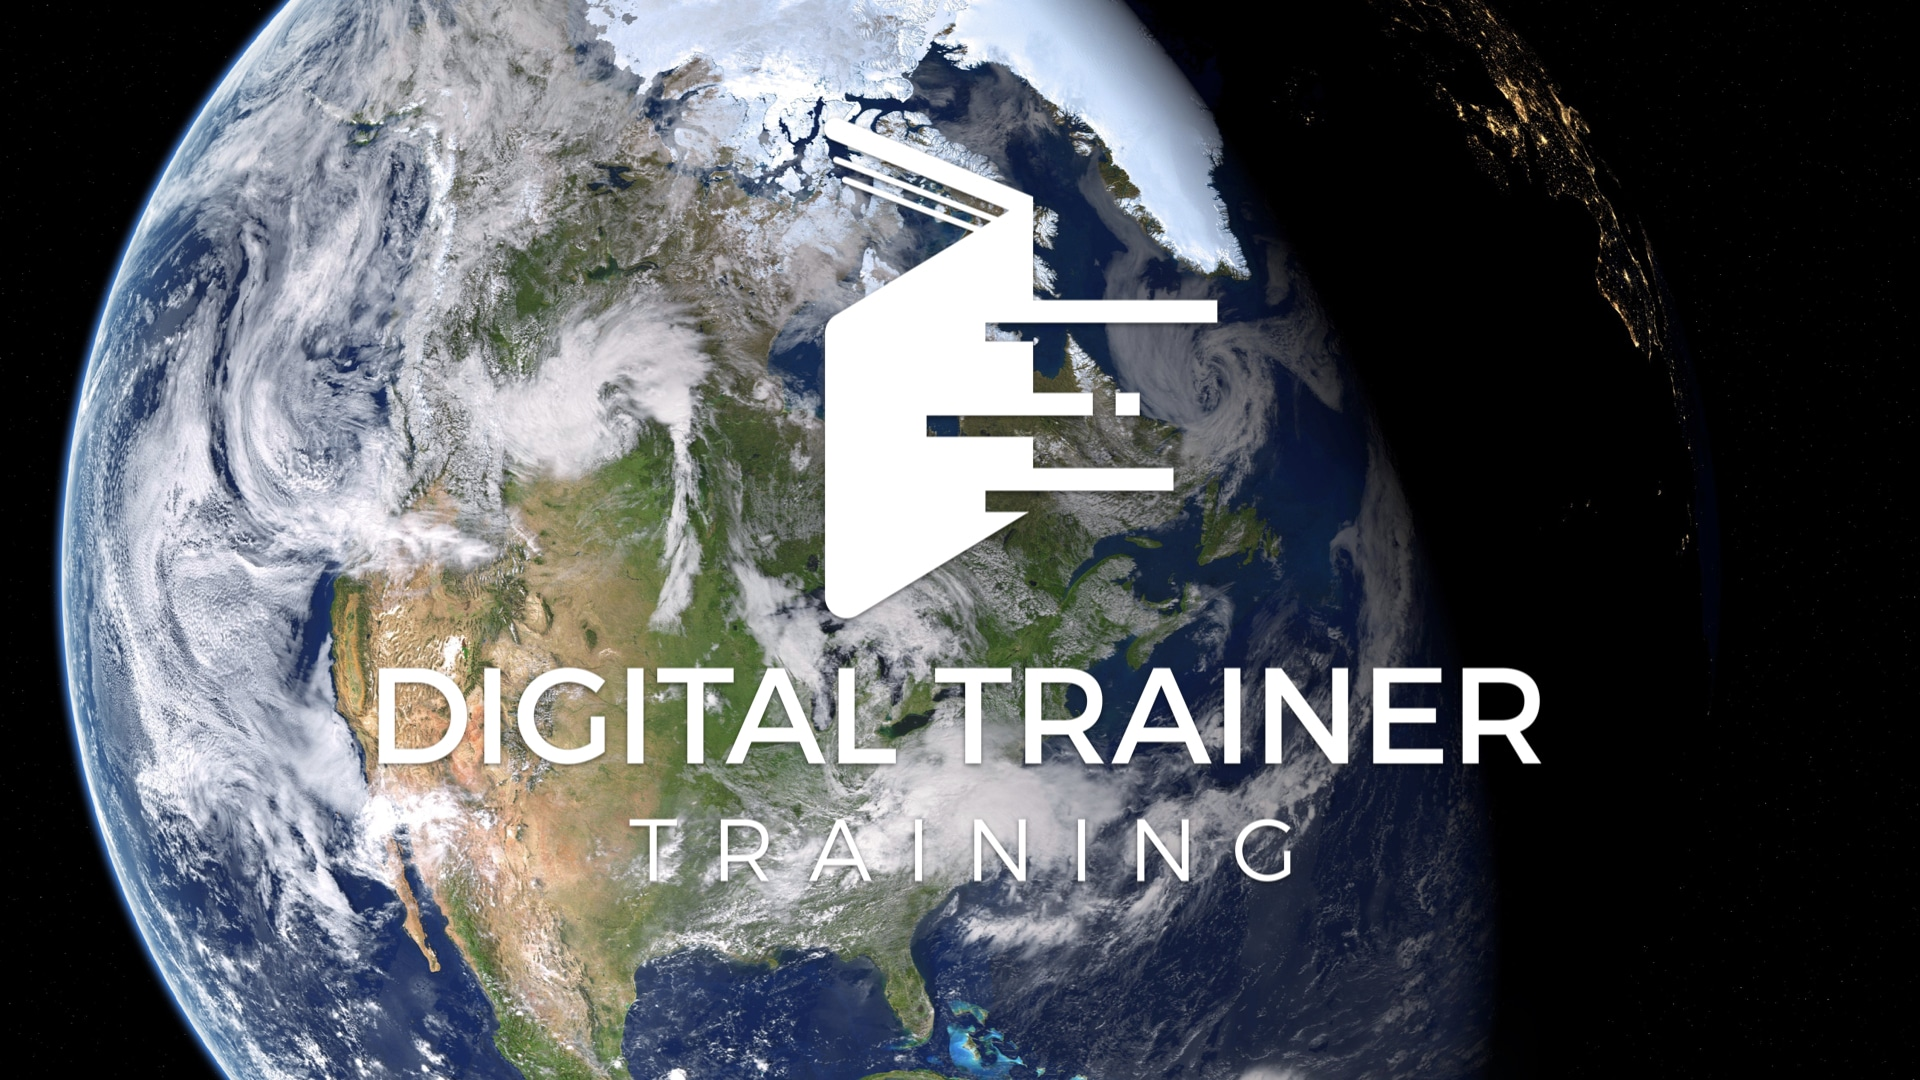 Digital Trainer